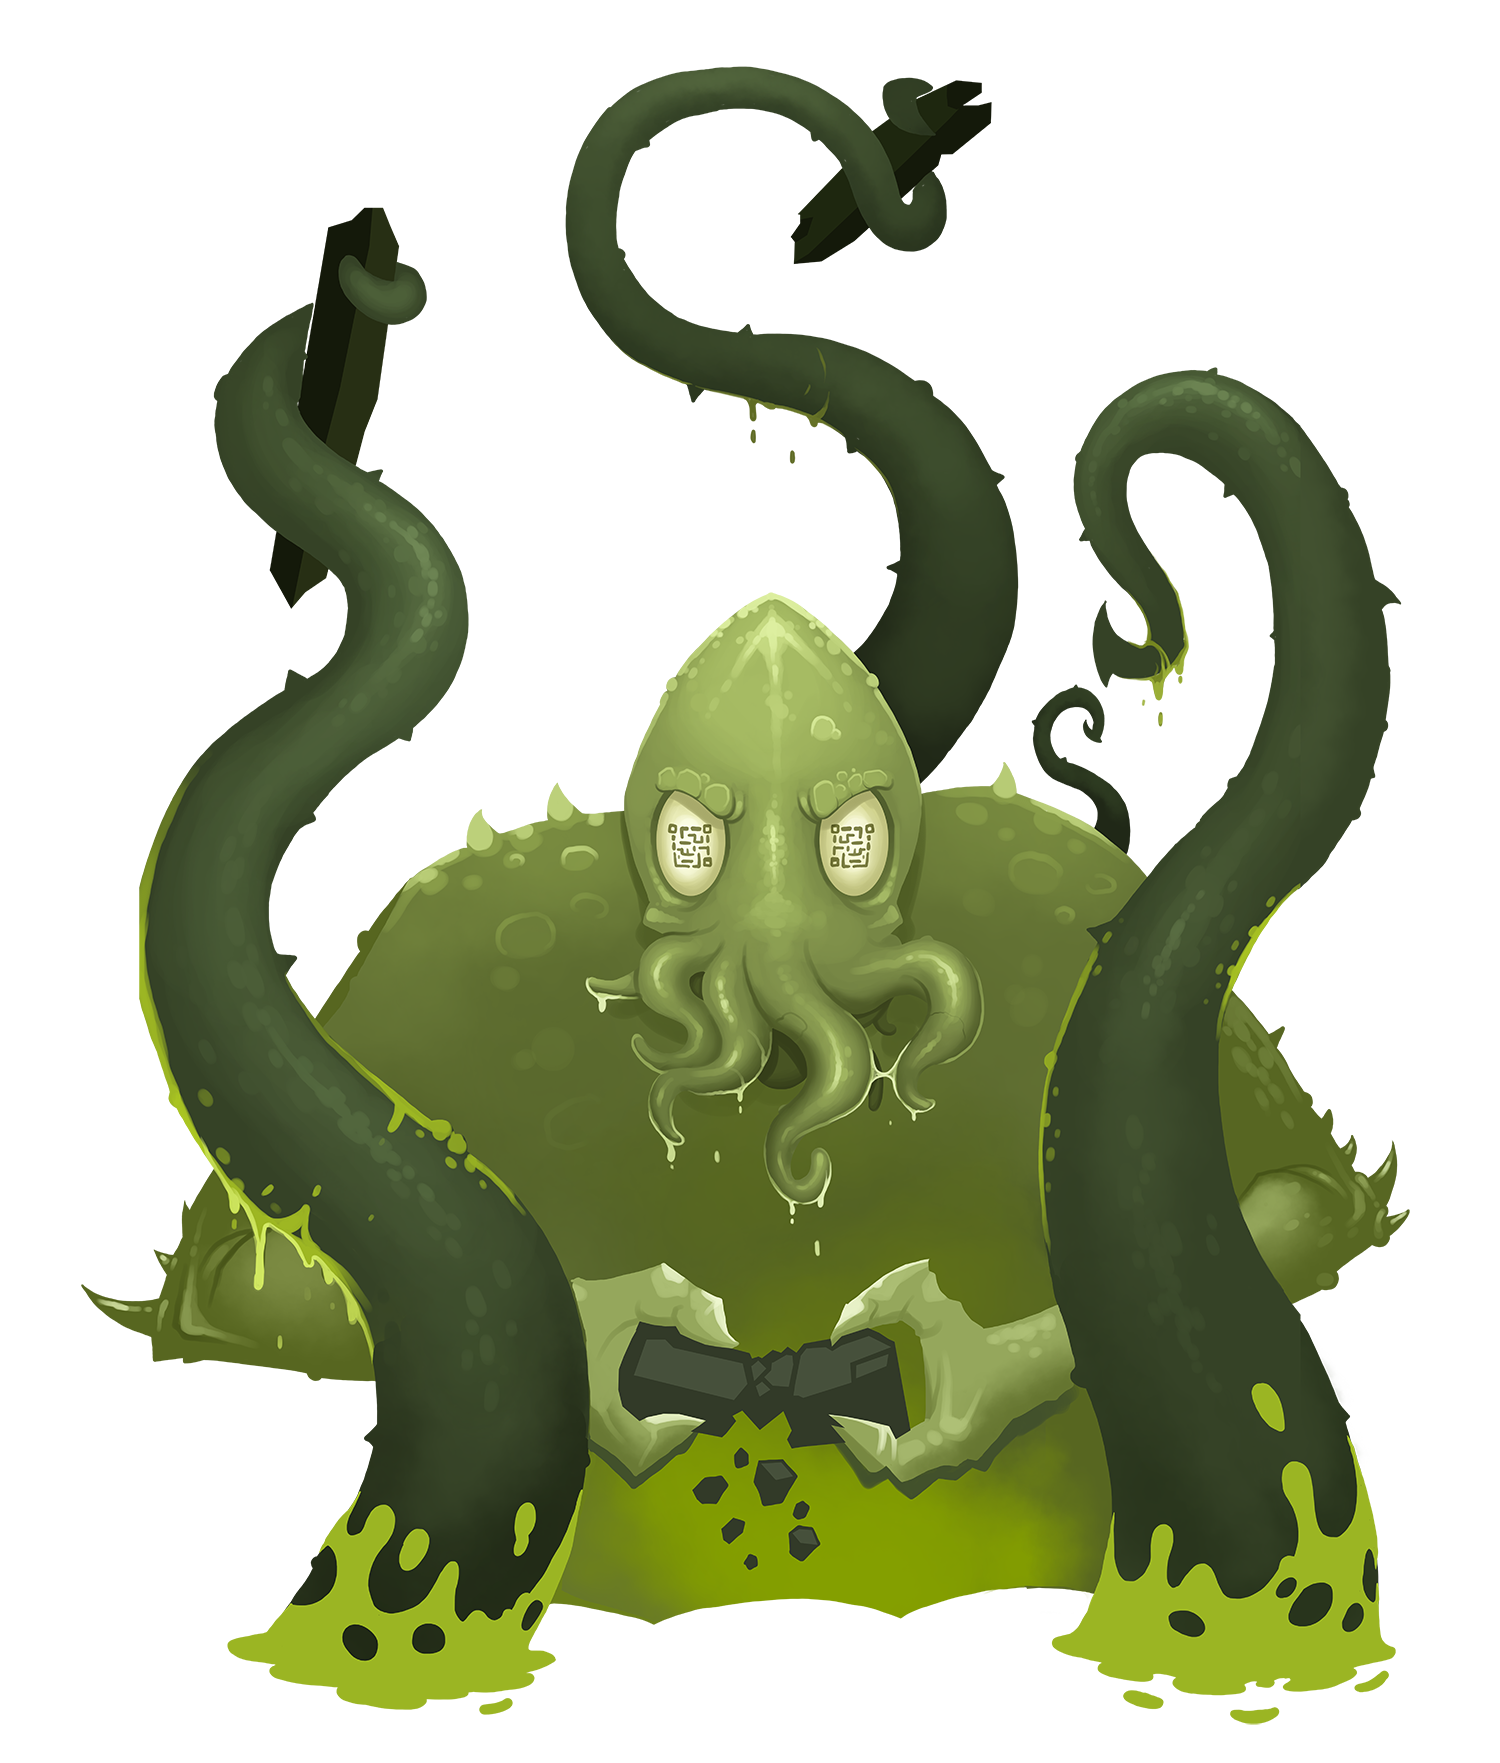 A multi-tentacled illustrated monster rips apart a city.